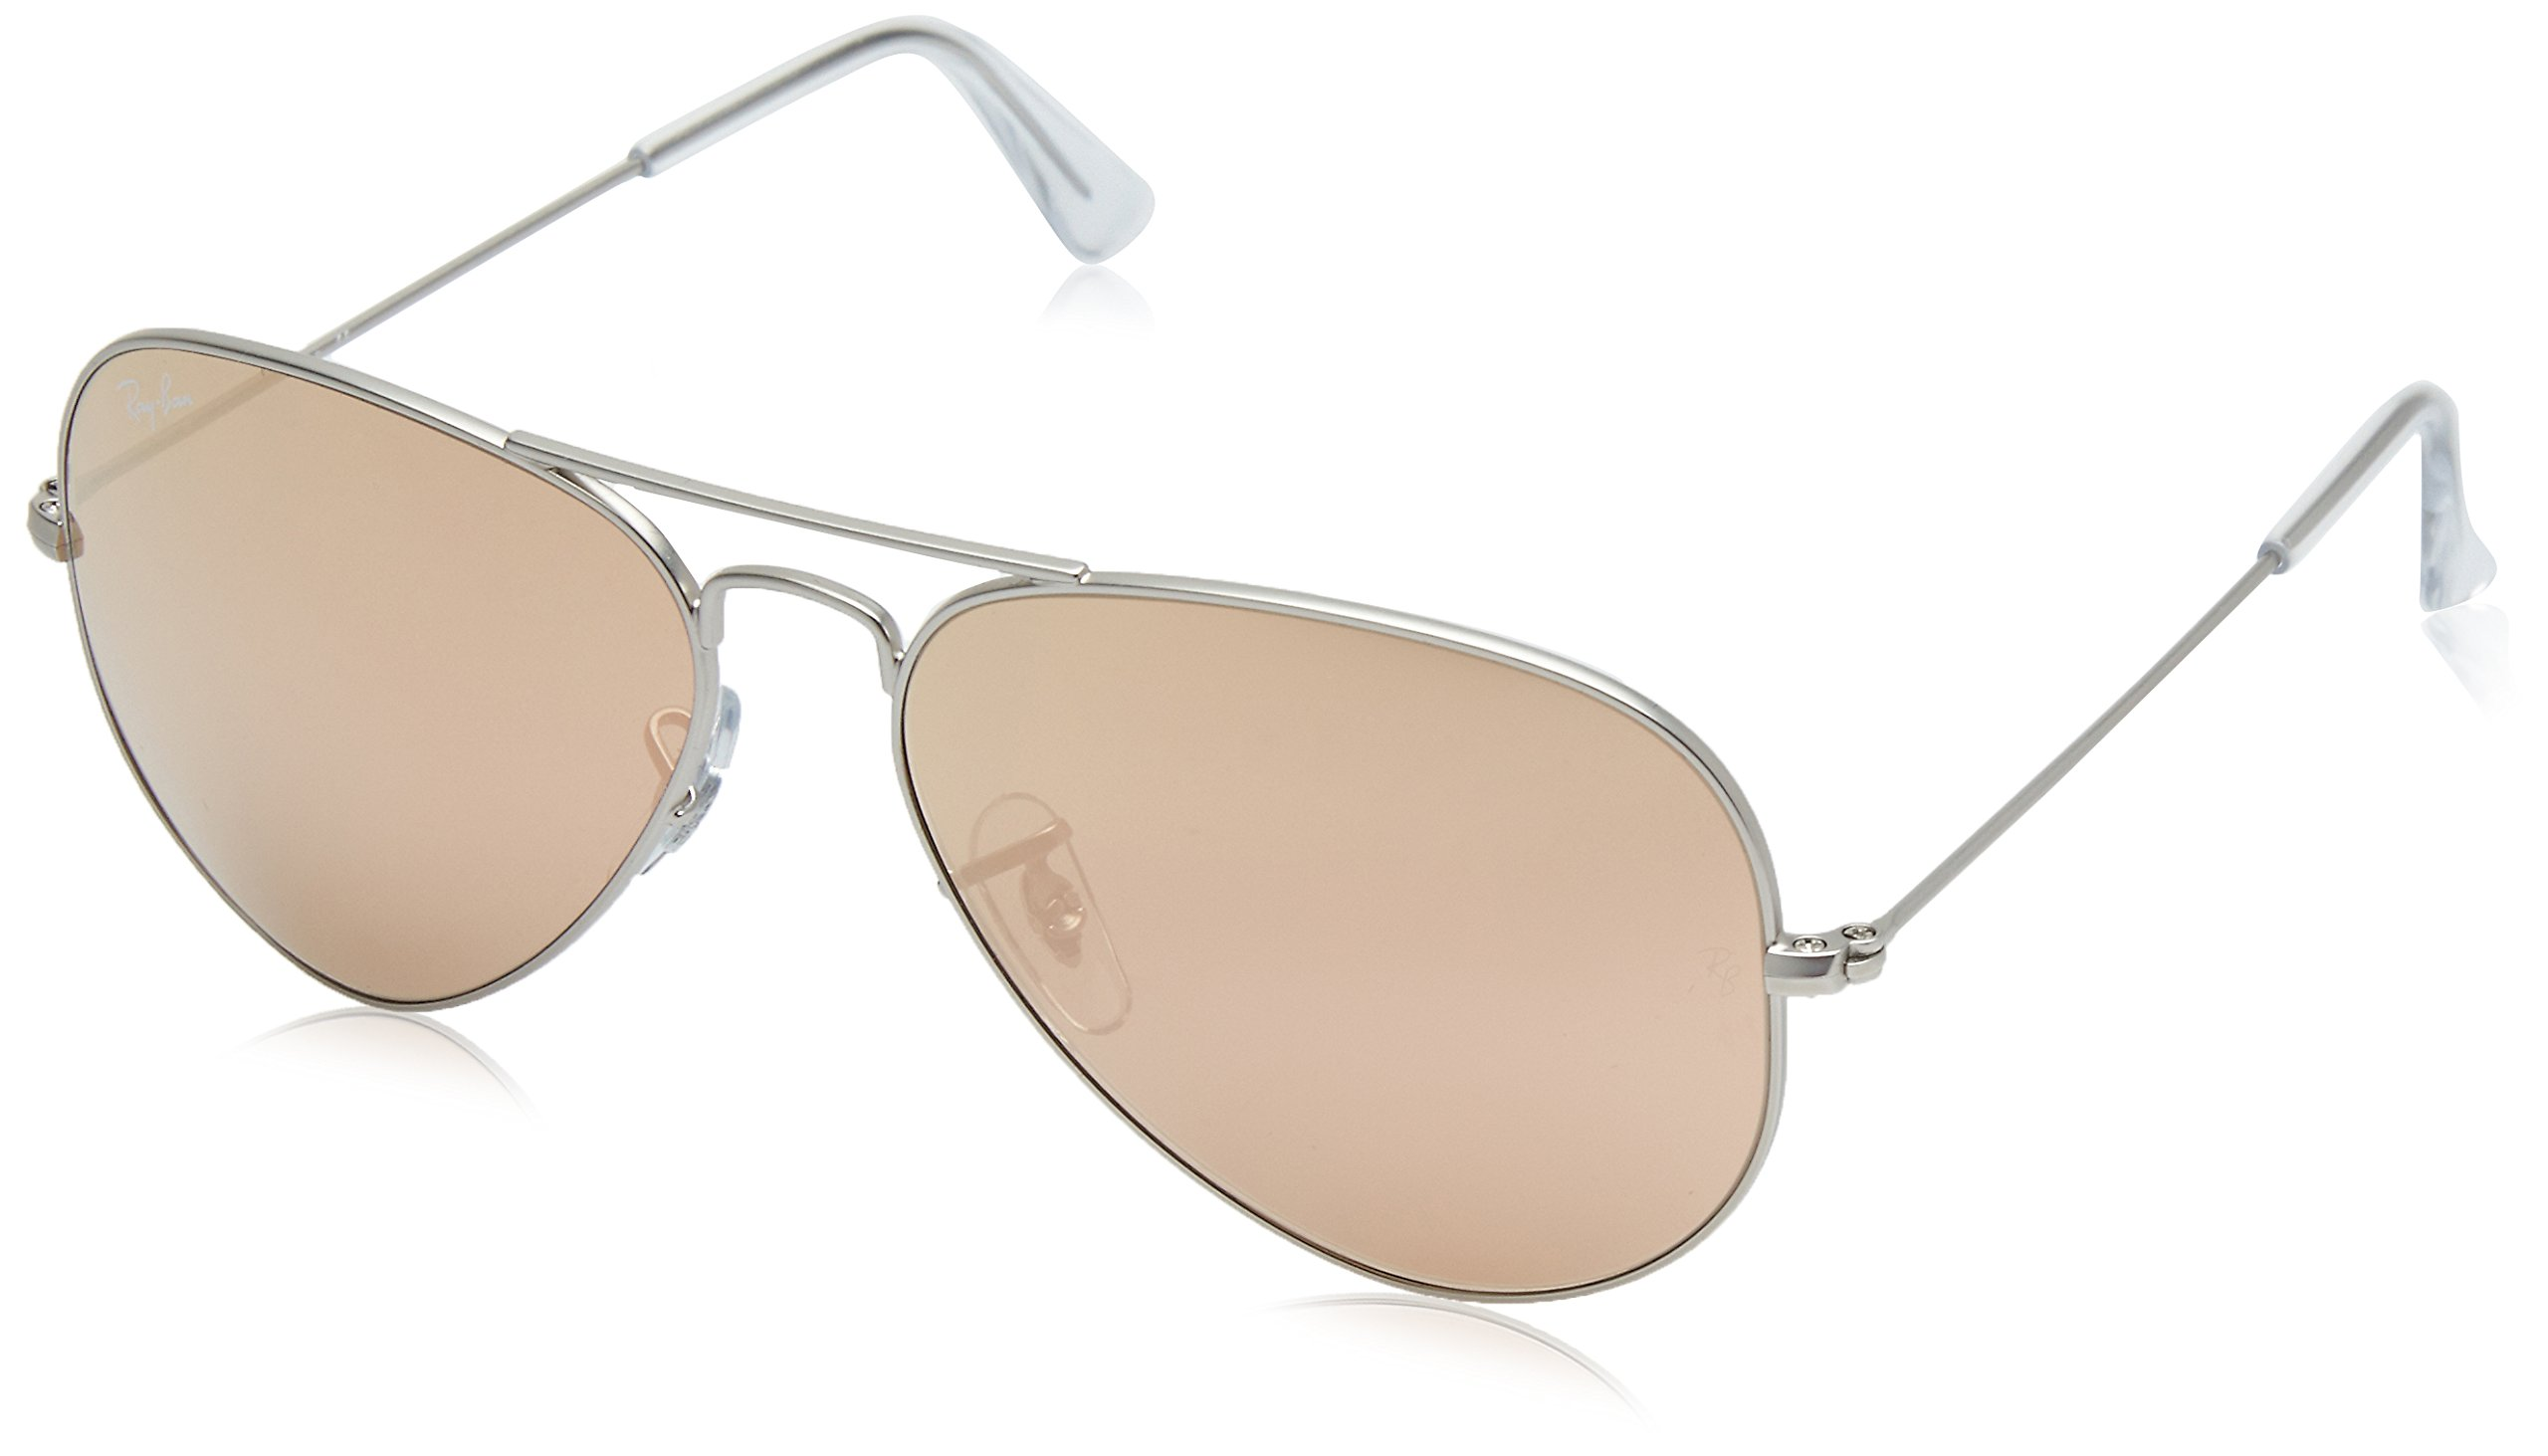 Soleil MixteMatte Lunettes Ban3025 De Silver Ray bYvm6If7gy